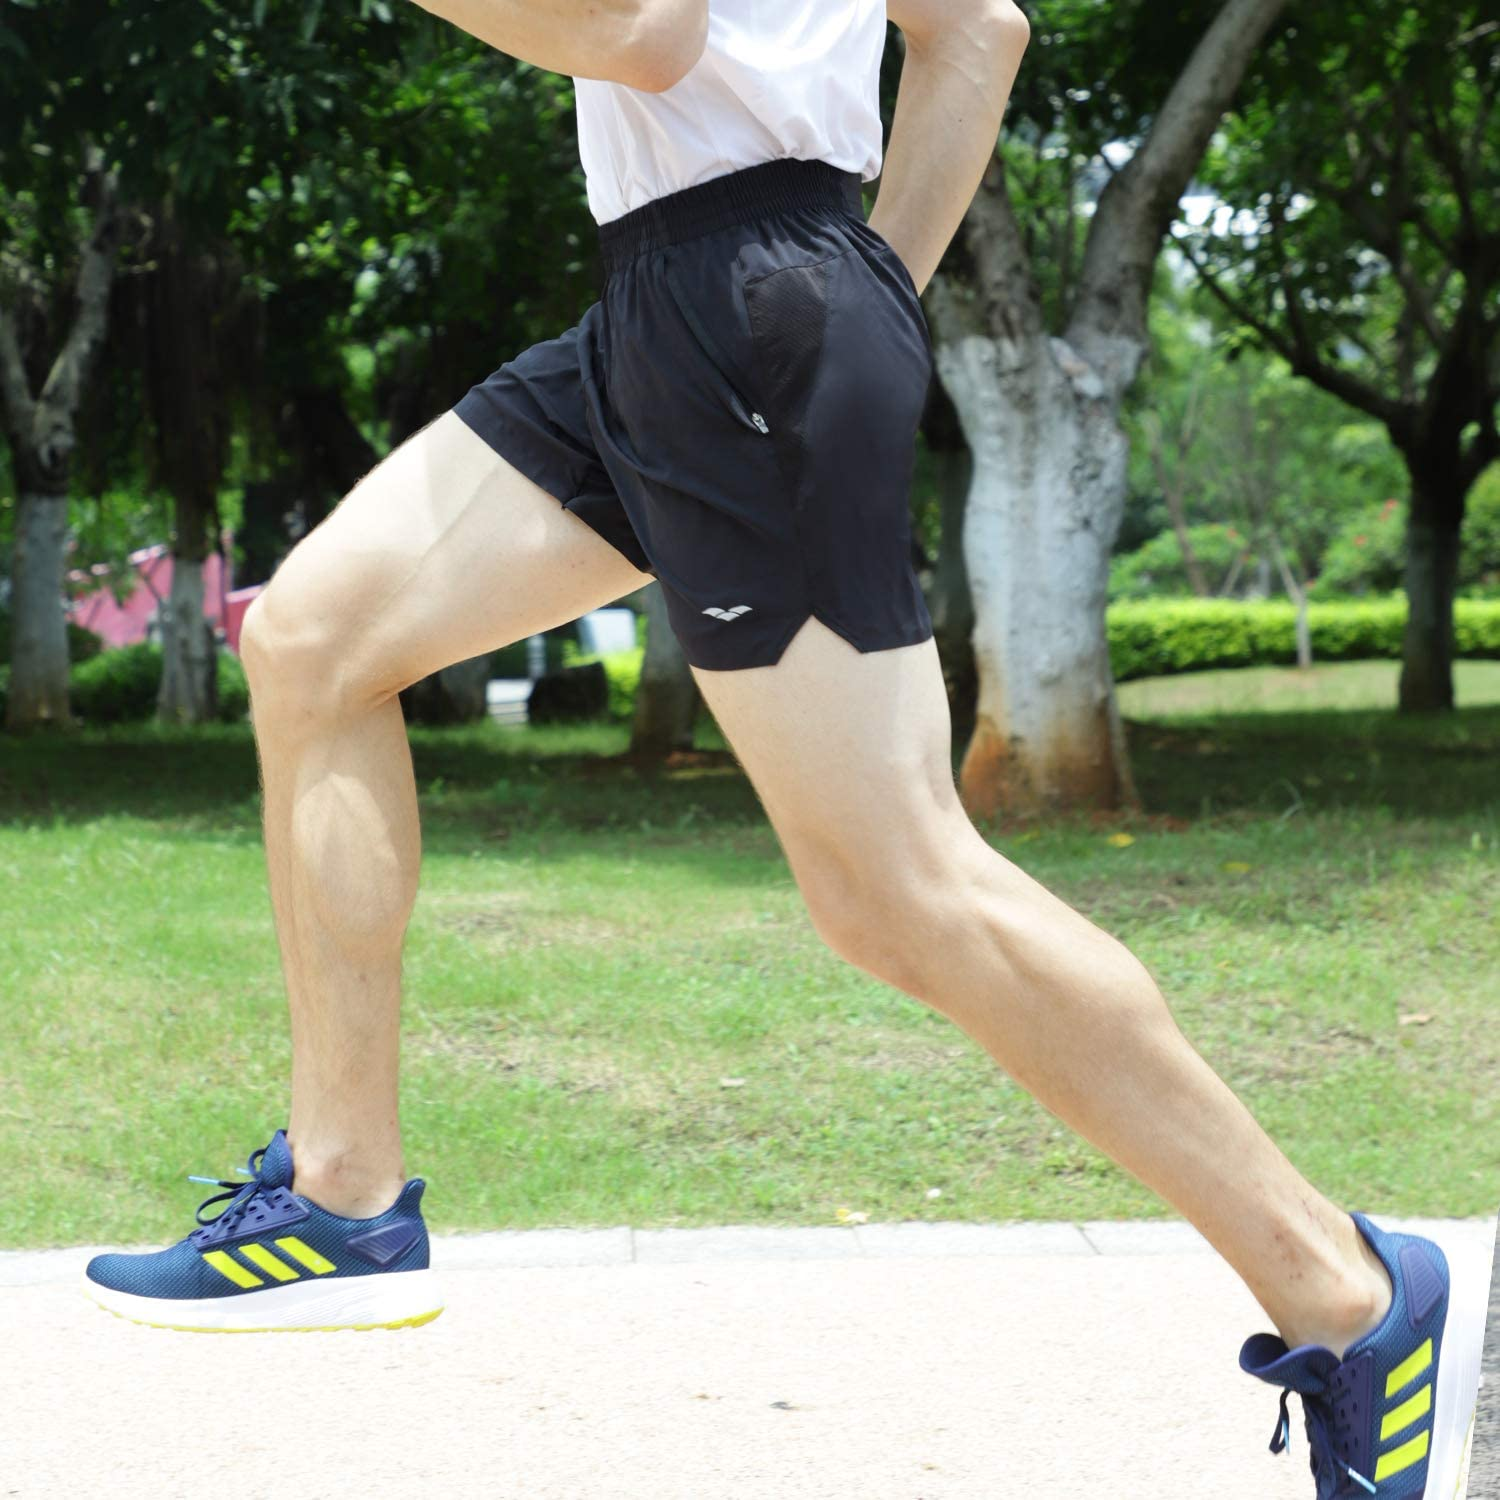 MIER Mens 5 Inches Running Athletic Shorts Quick Dry Workout Training Tennis Shorts with 4 Pockets Lightweight No Liner